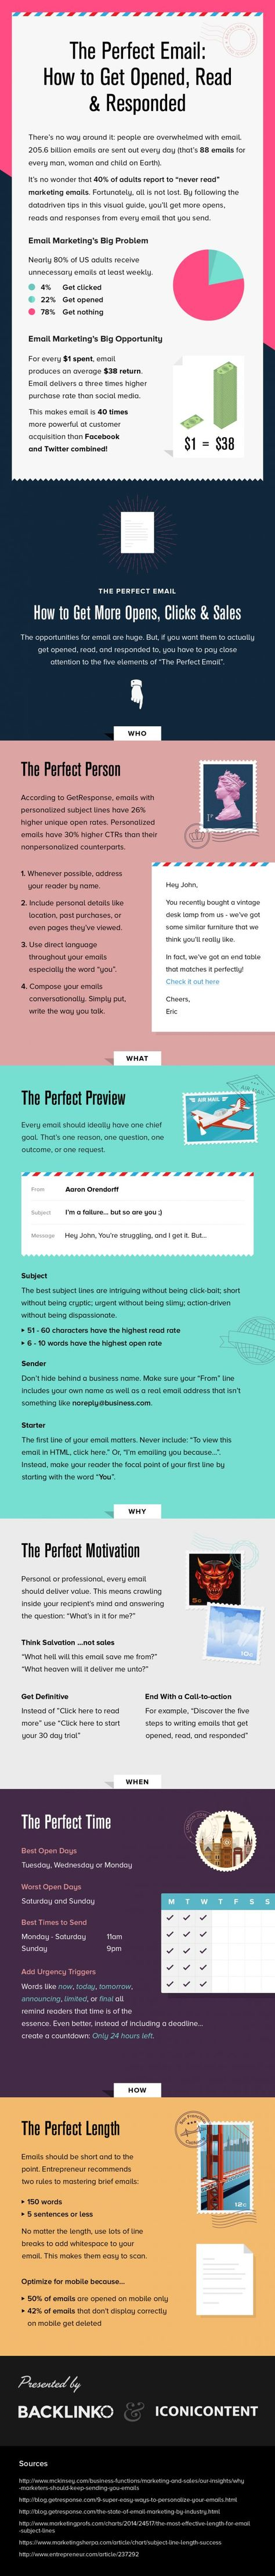 How to Write the Perfect Business Email Using Just 5 Questions (Infographic)